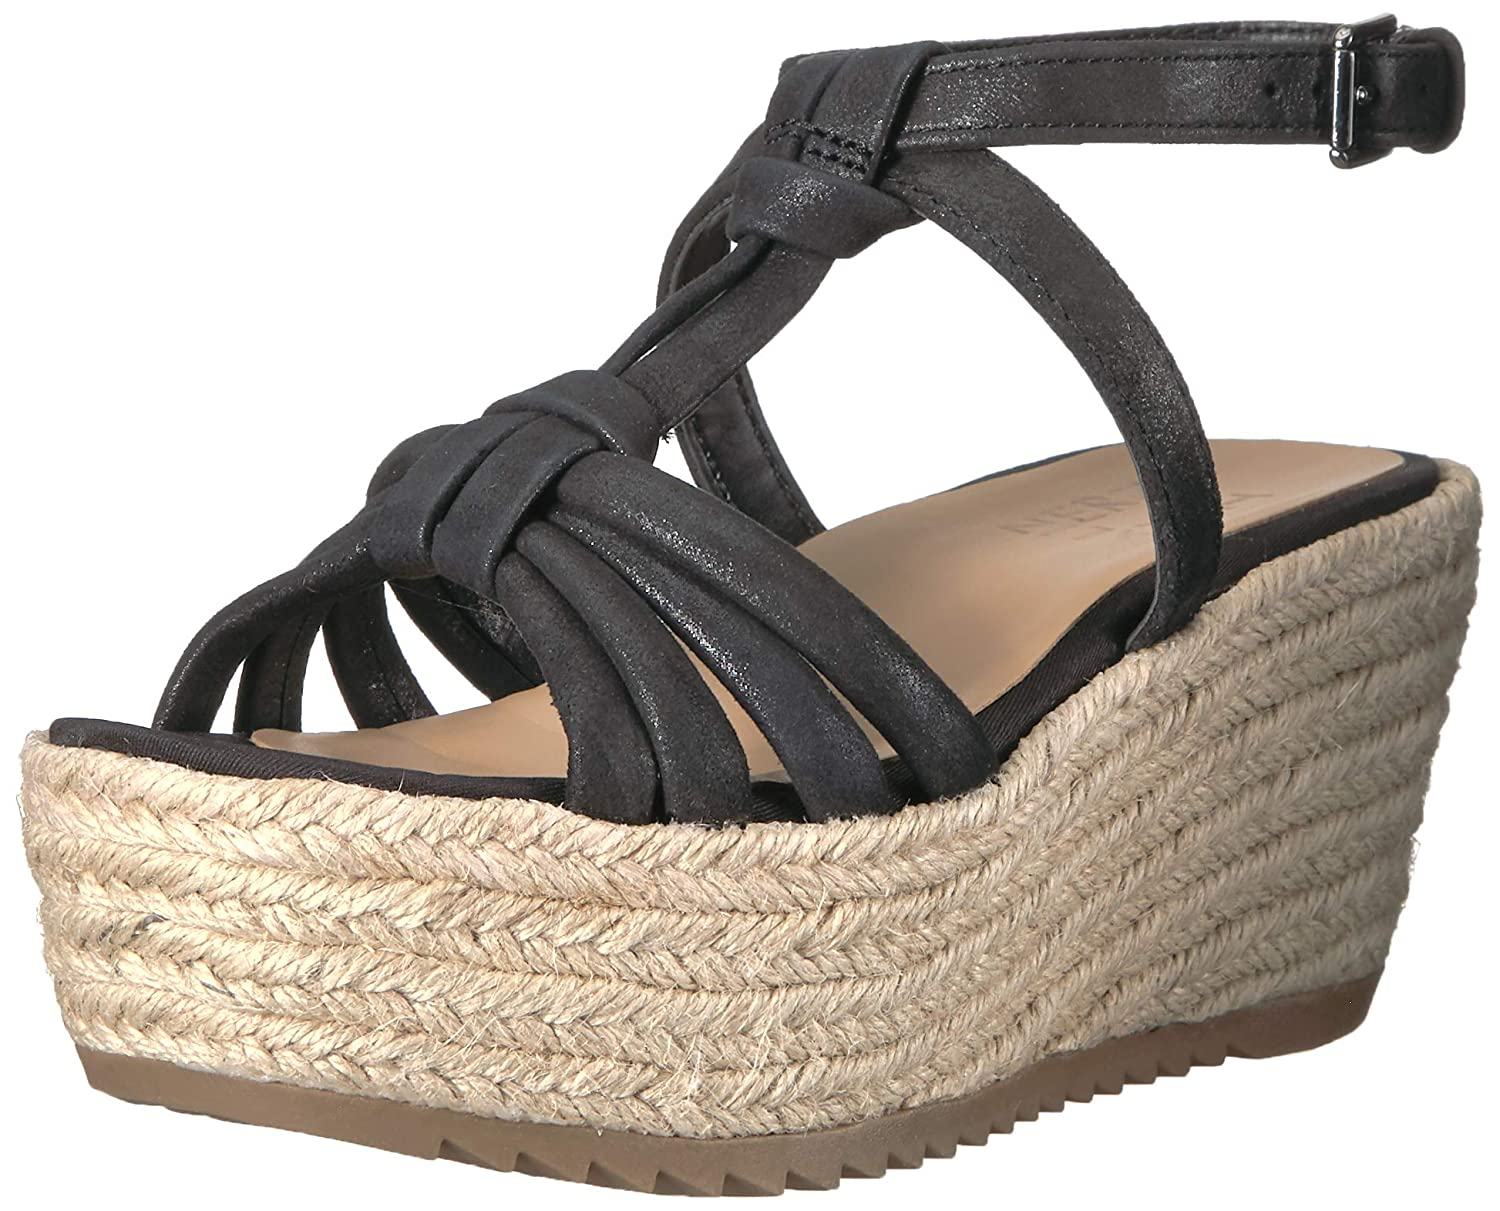 Black Naturalizer Women's Odina Espadrille Wedge Sandal